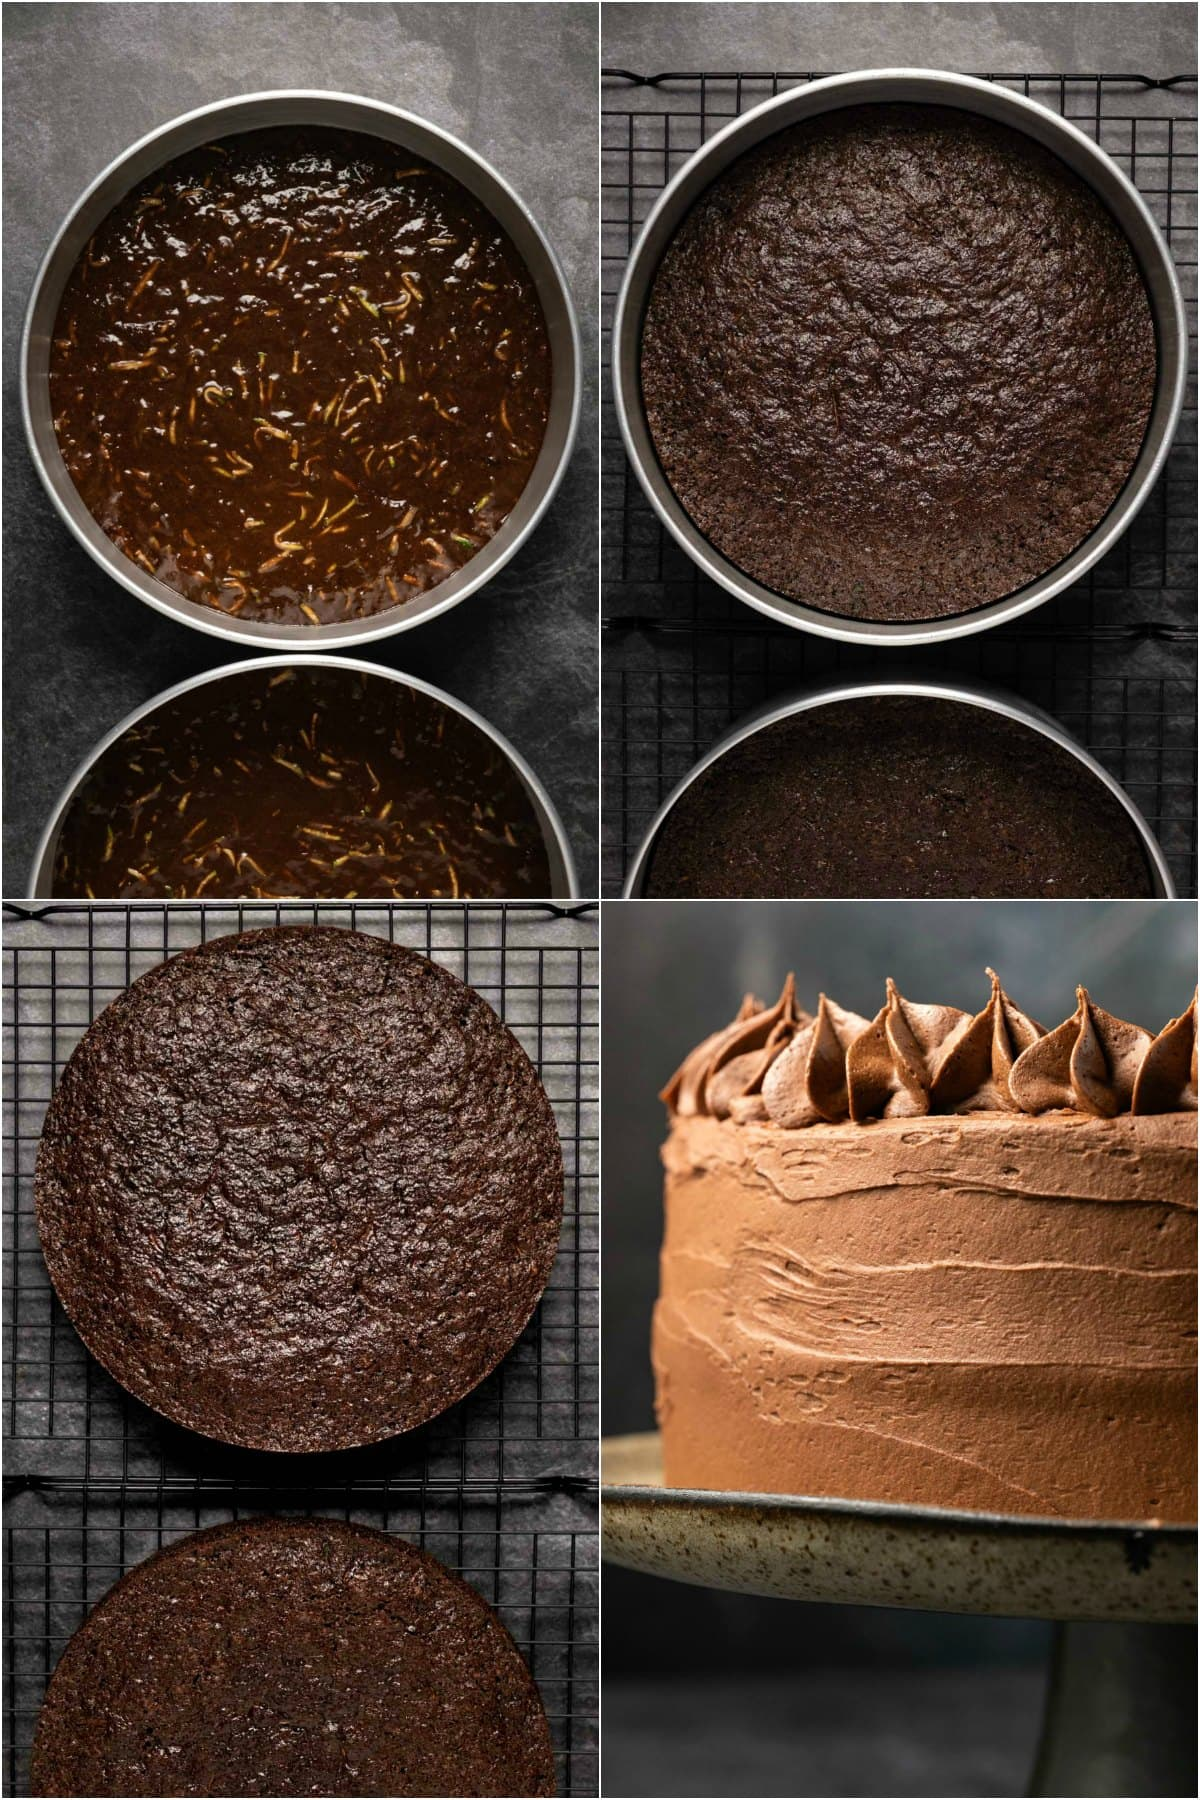 Step by step process photo collage of making a chocolate zucchini cake.